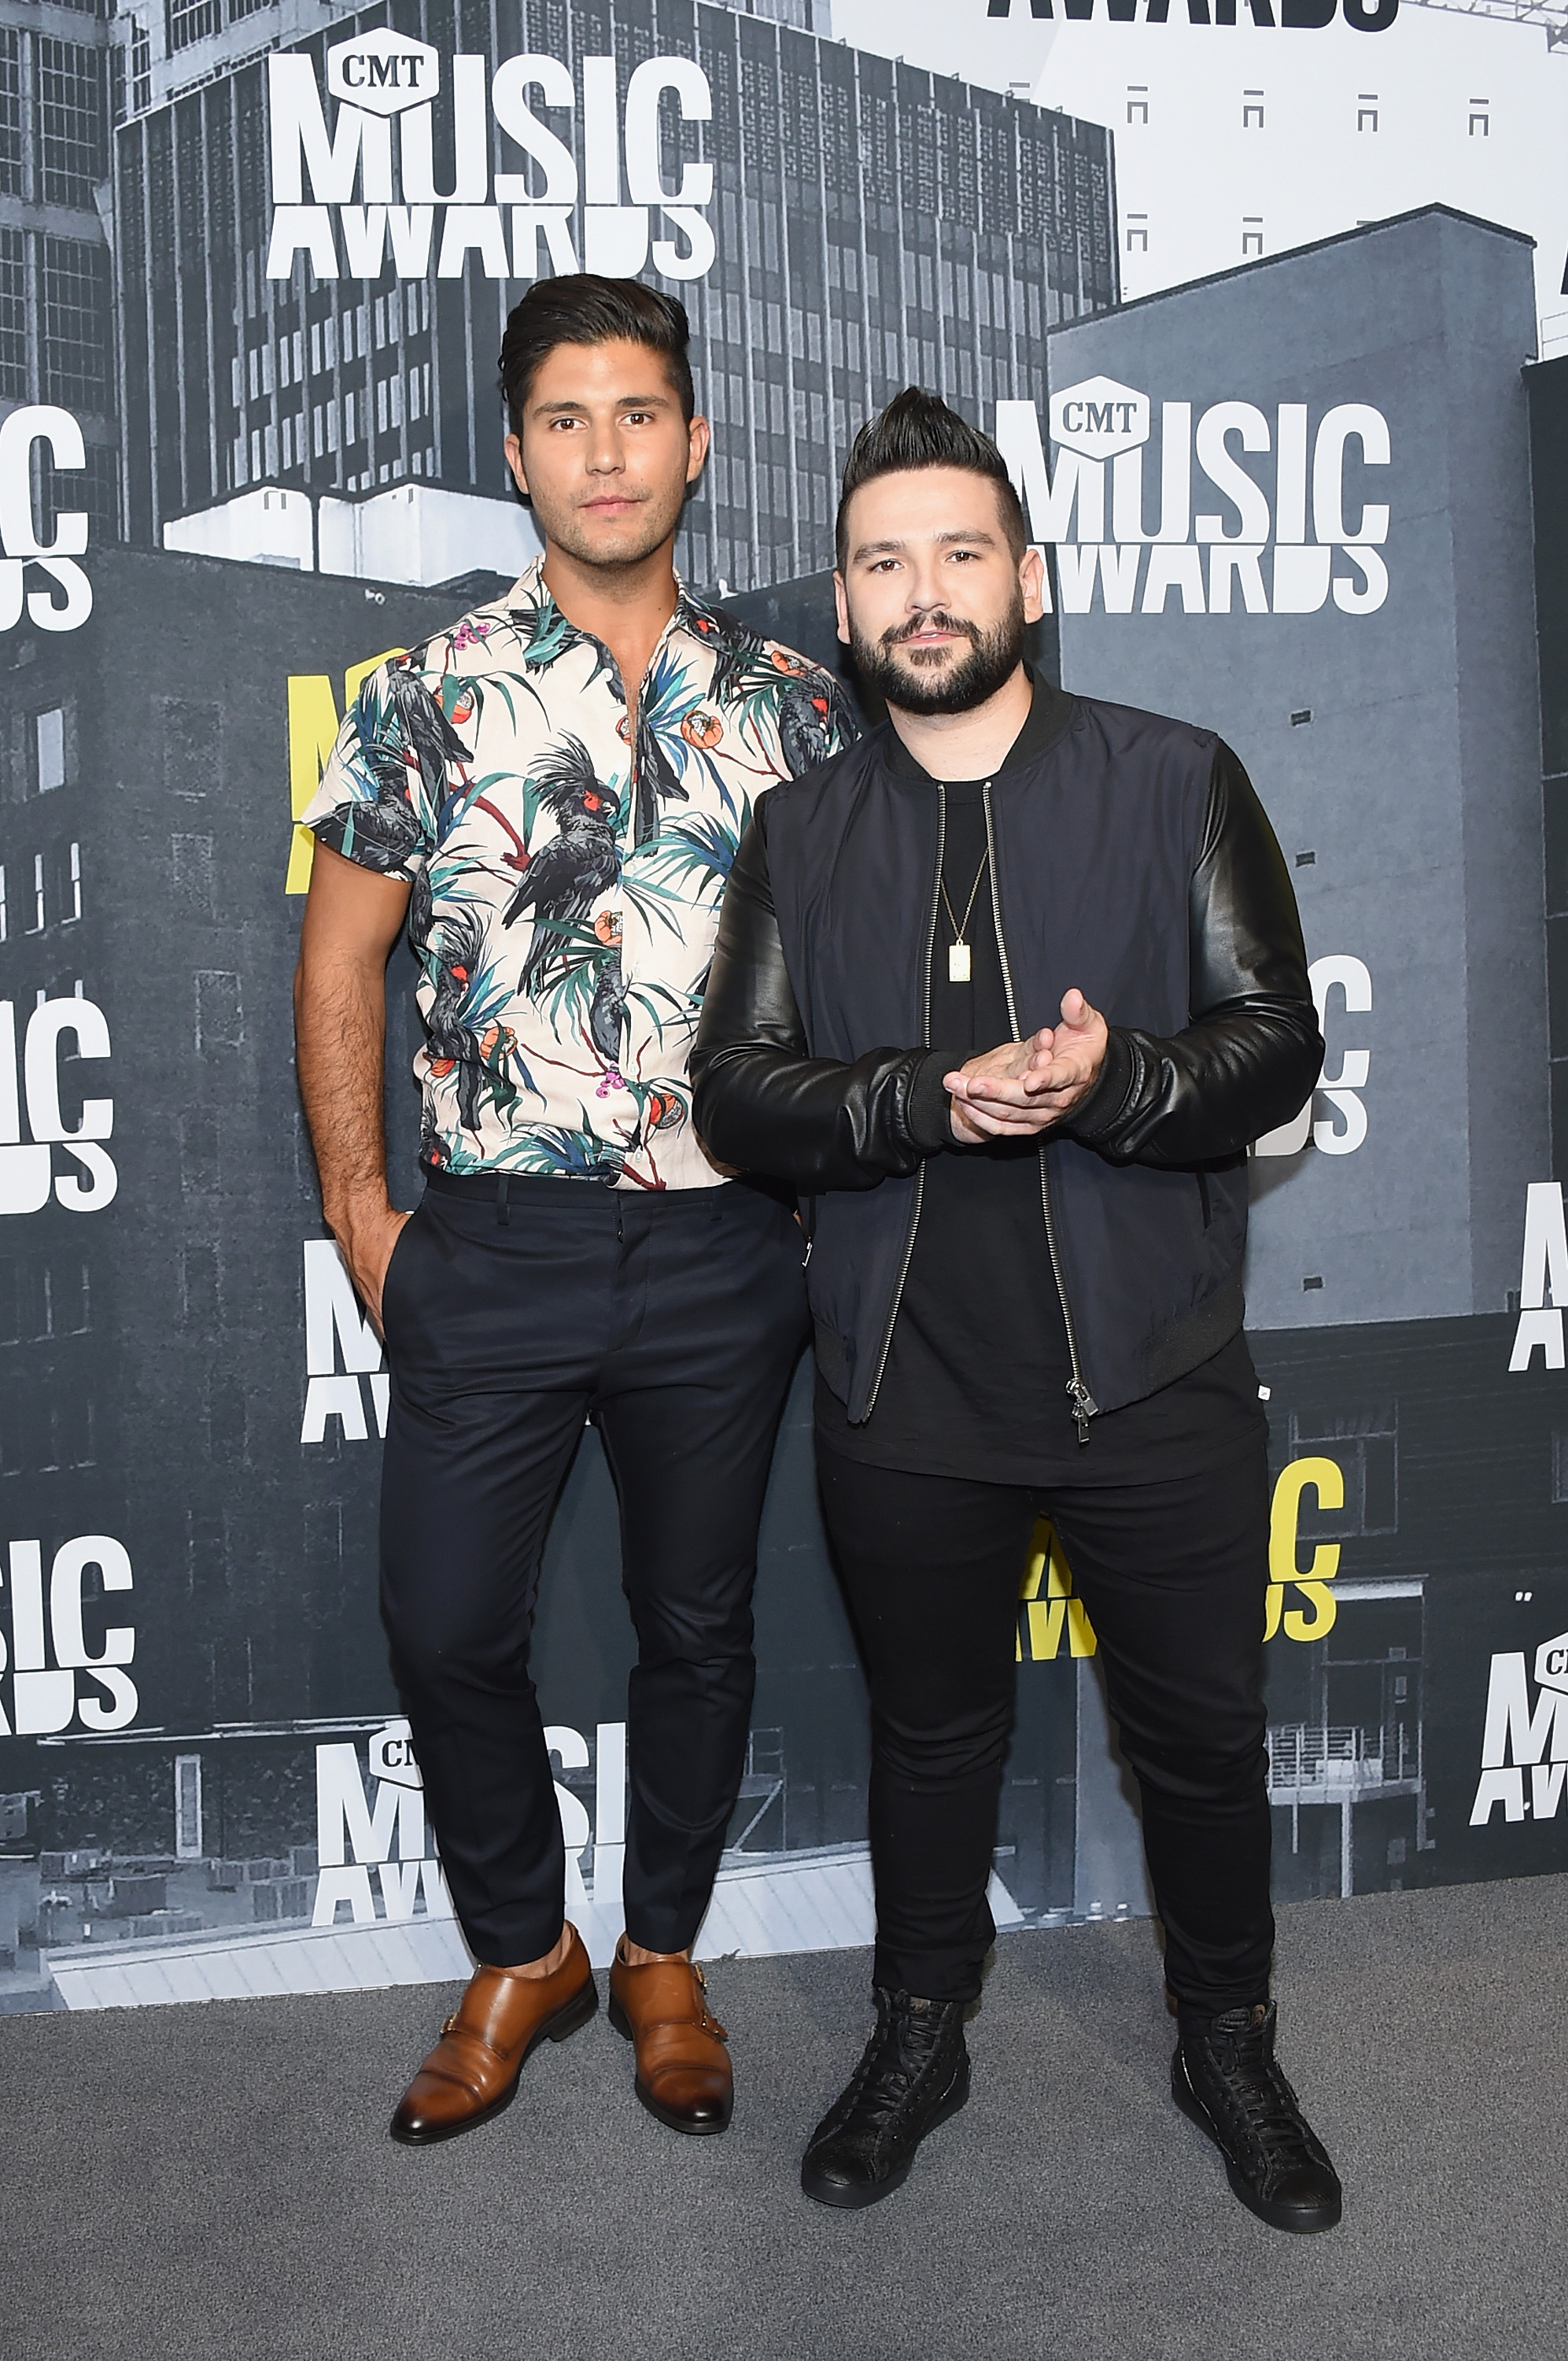 NASHVILLE, TN - JUNE 07: Recording artists Dan Smyers (L) and Shay Mooney of Dan + Shay attend the 2017 CMT Music Awards at the Music City Center on June 7, 2017 in Nashville, Tennessee. (Photo by Michael Loccisano/Getty Images For CMT)